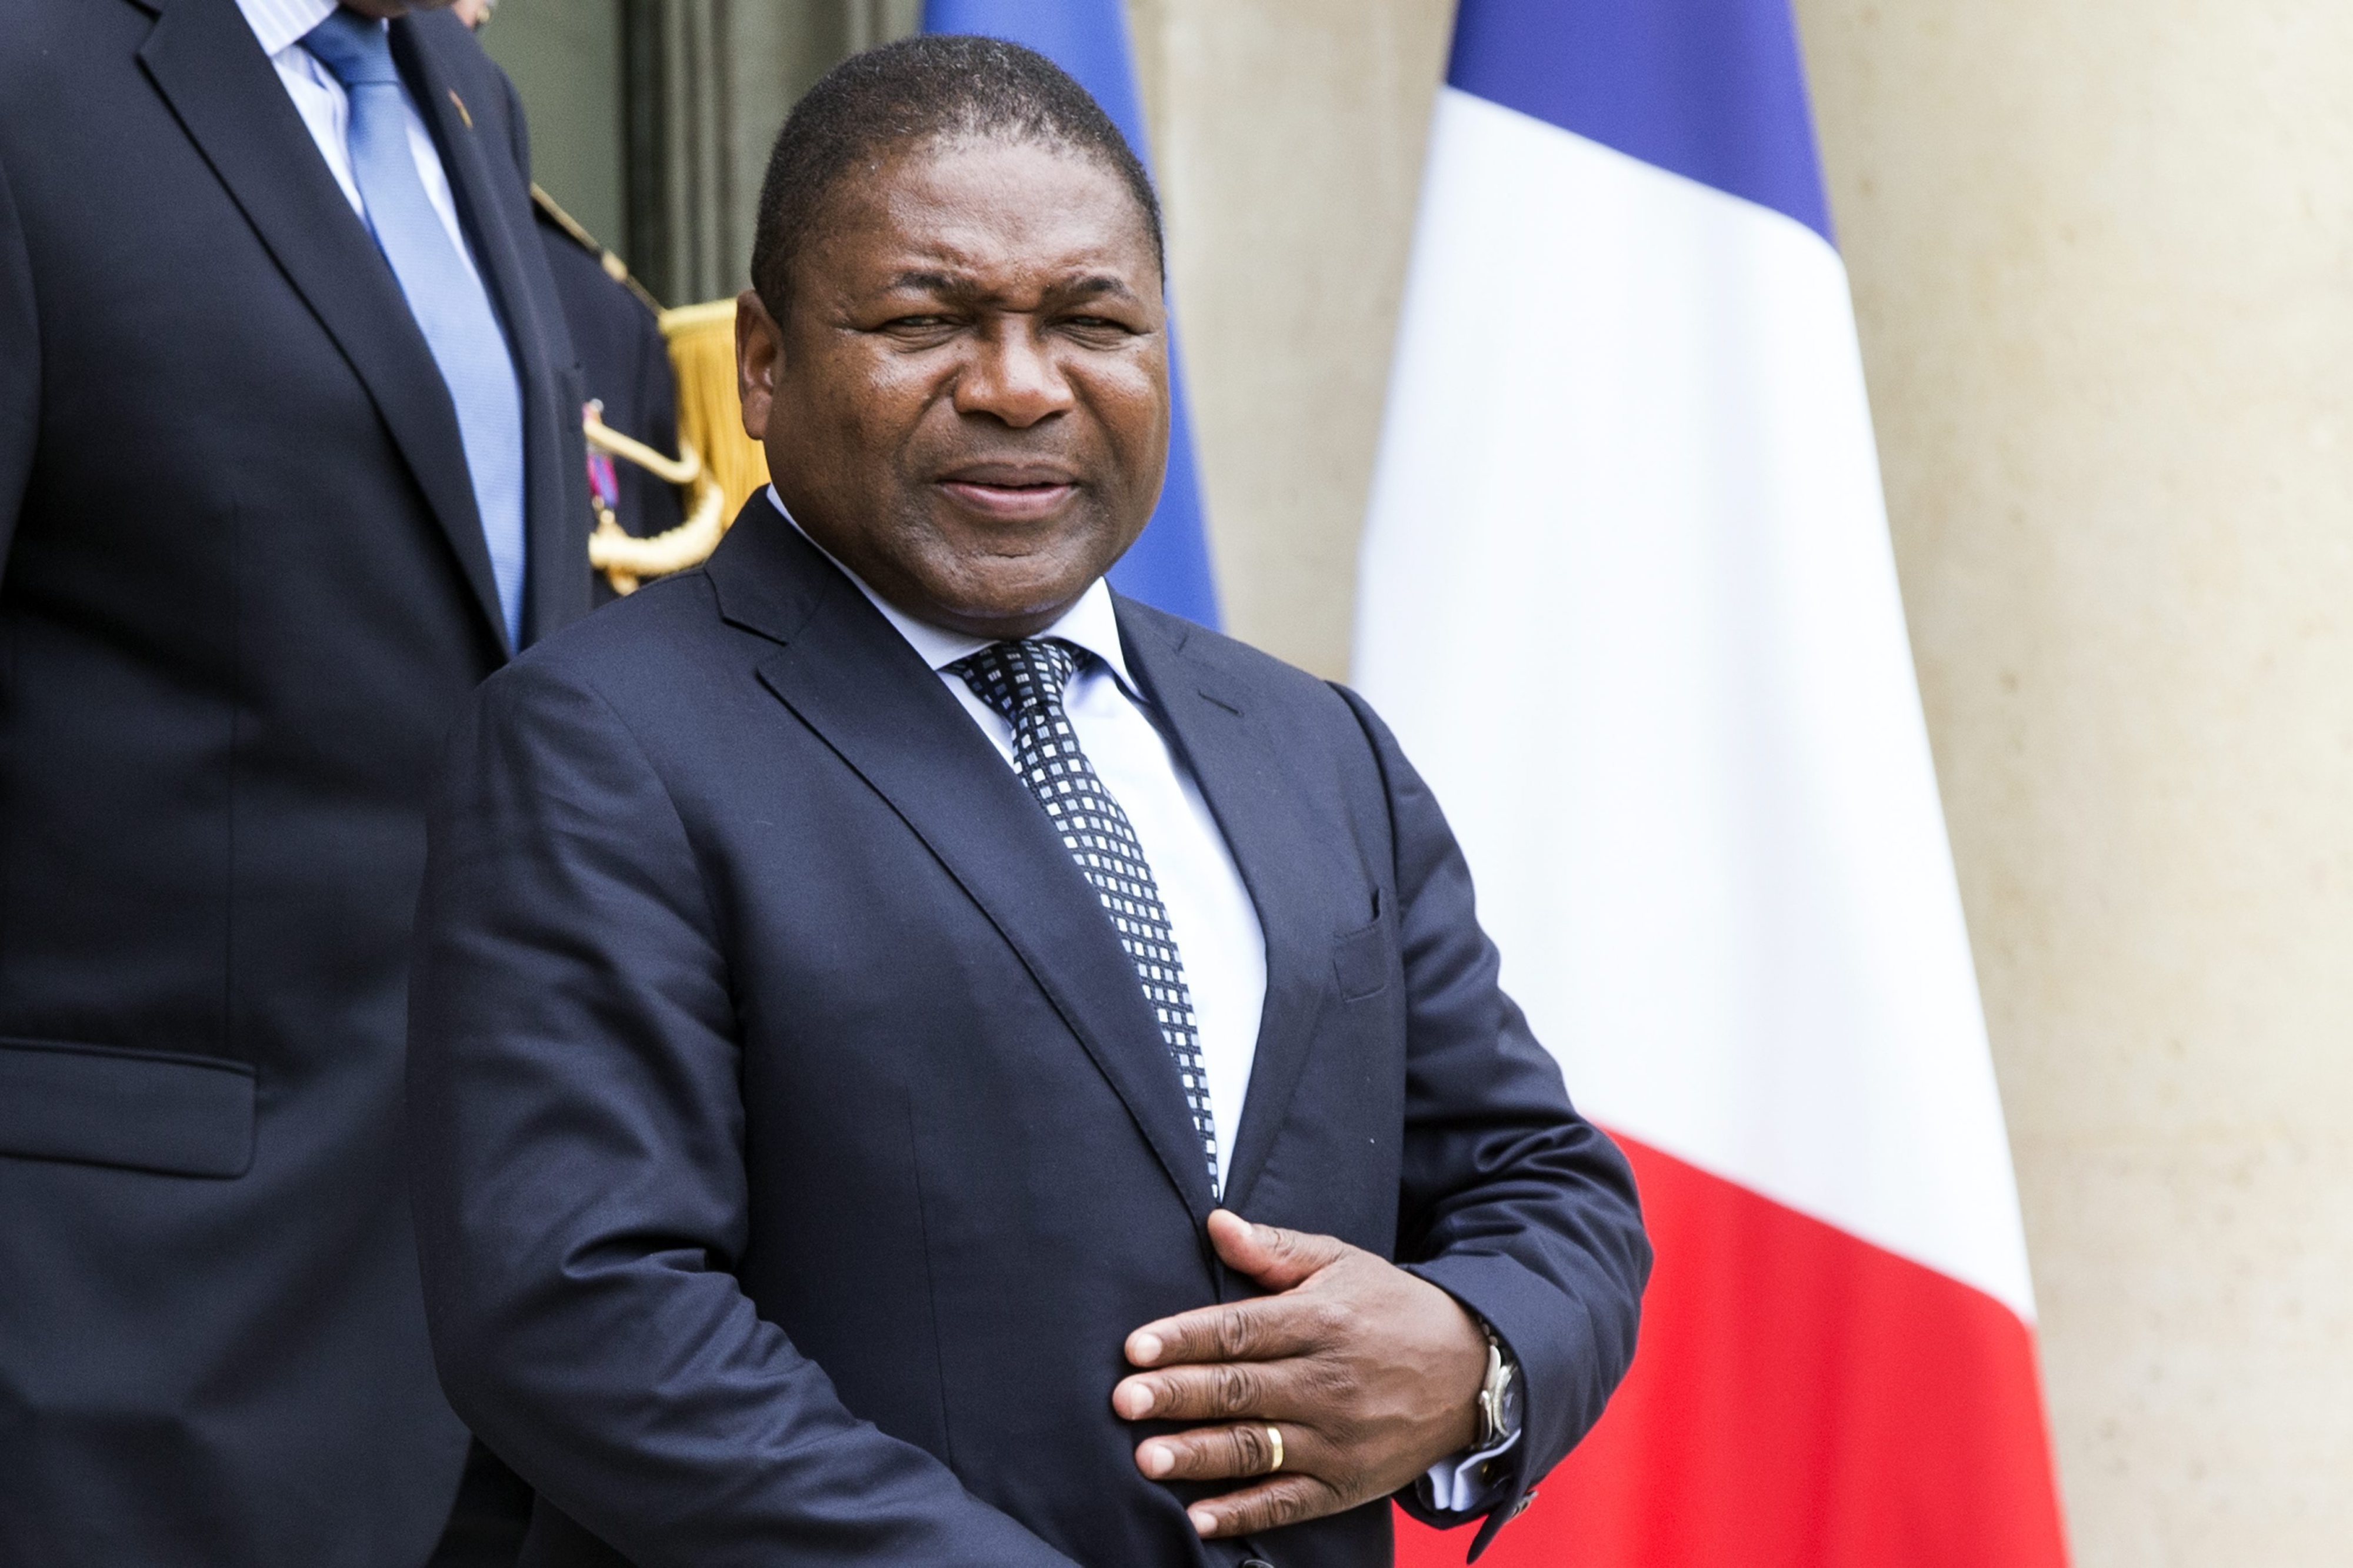 epa04854064 Mozambican President Filipe Nyusi leaves the Elysee Palace after a meeting with French President Francois Hollande (not pictured) in Paris, France, 20 July 2015. Nyusi is in France to beoost economic ties wih France on Moazmbique's natural resources. EPA/ETIENNE LAURENT